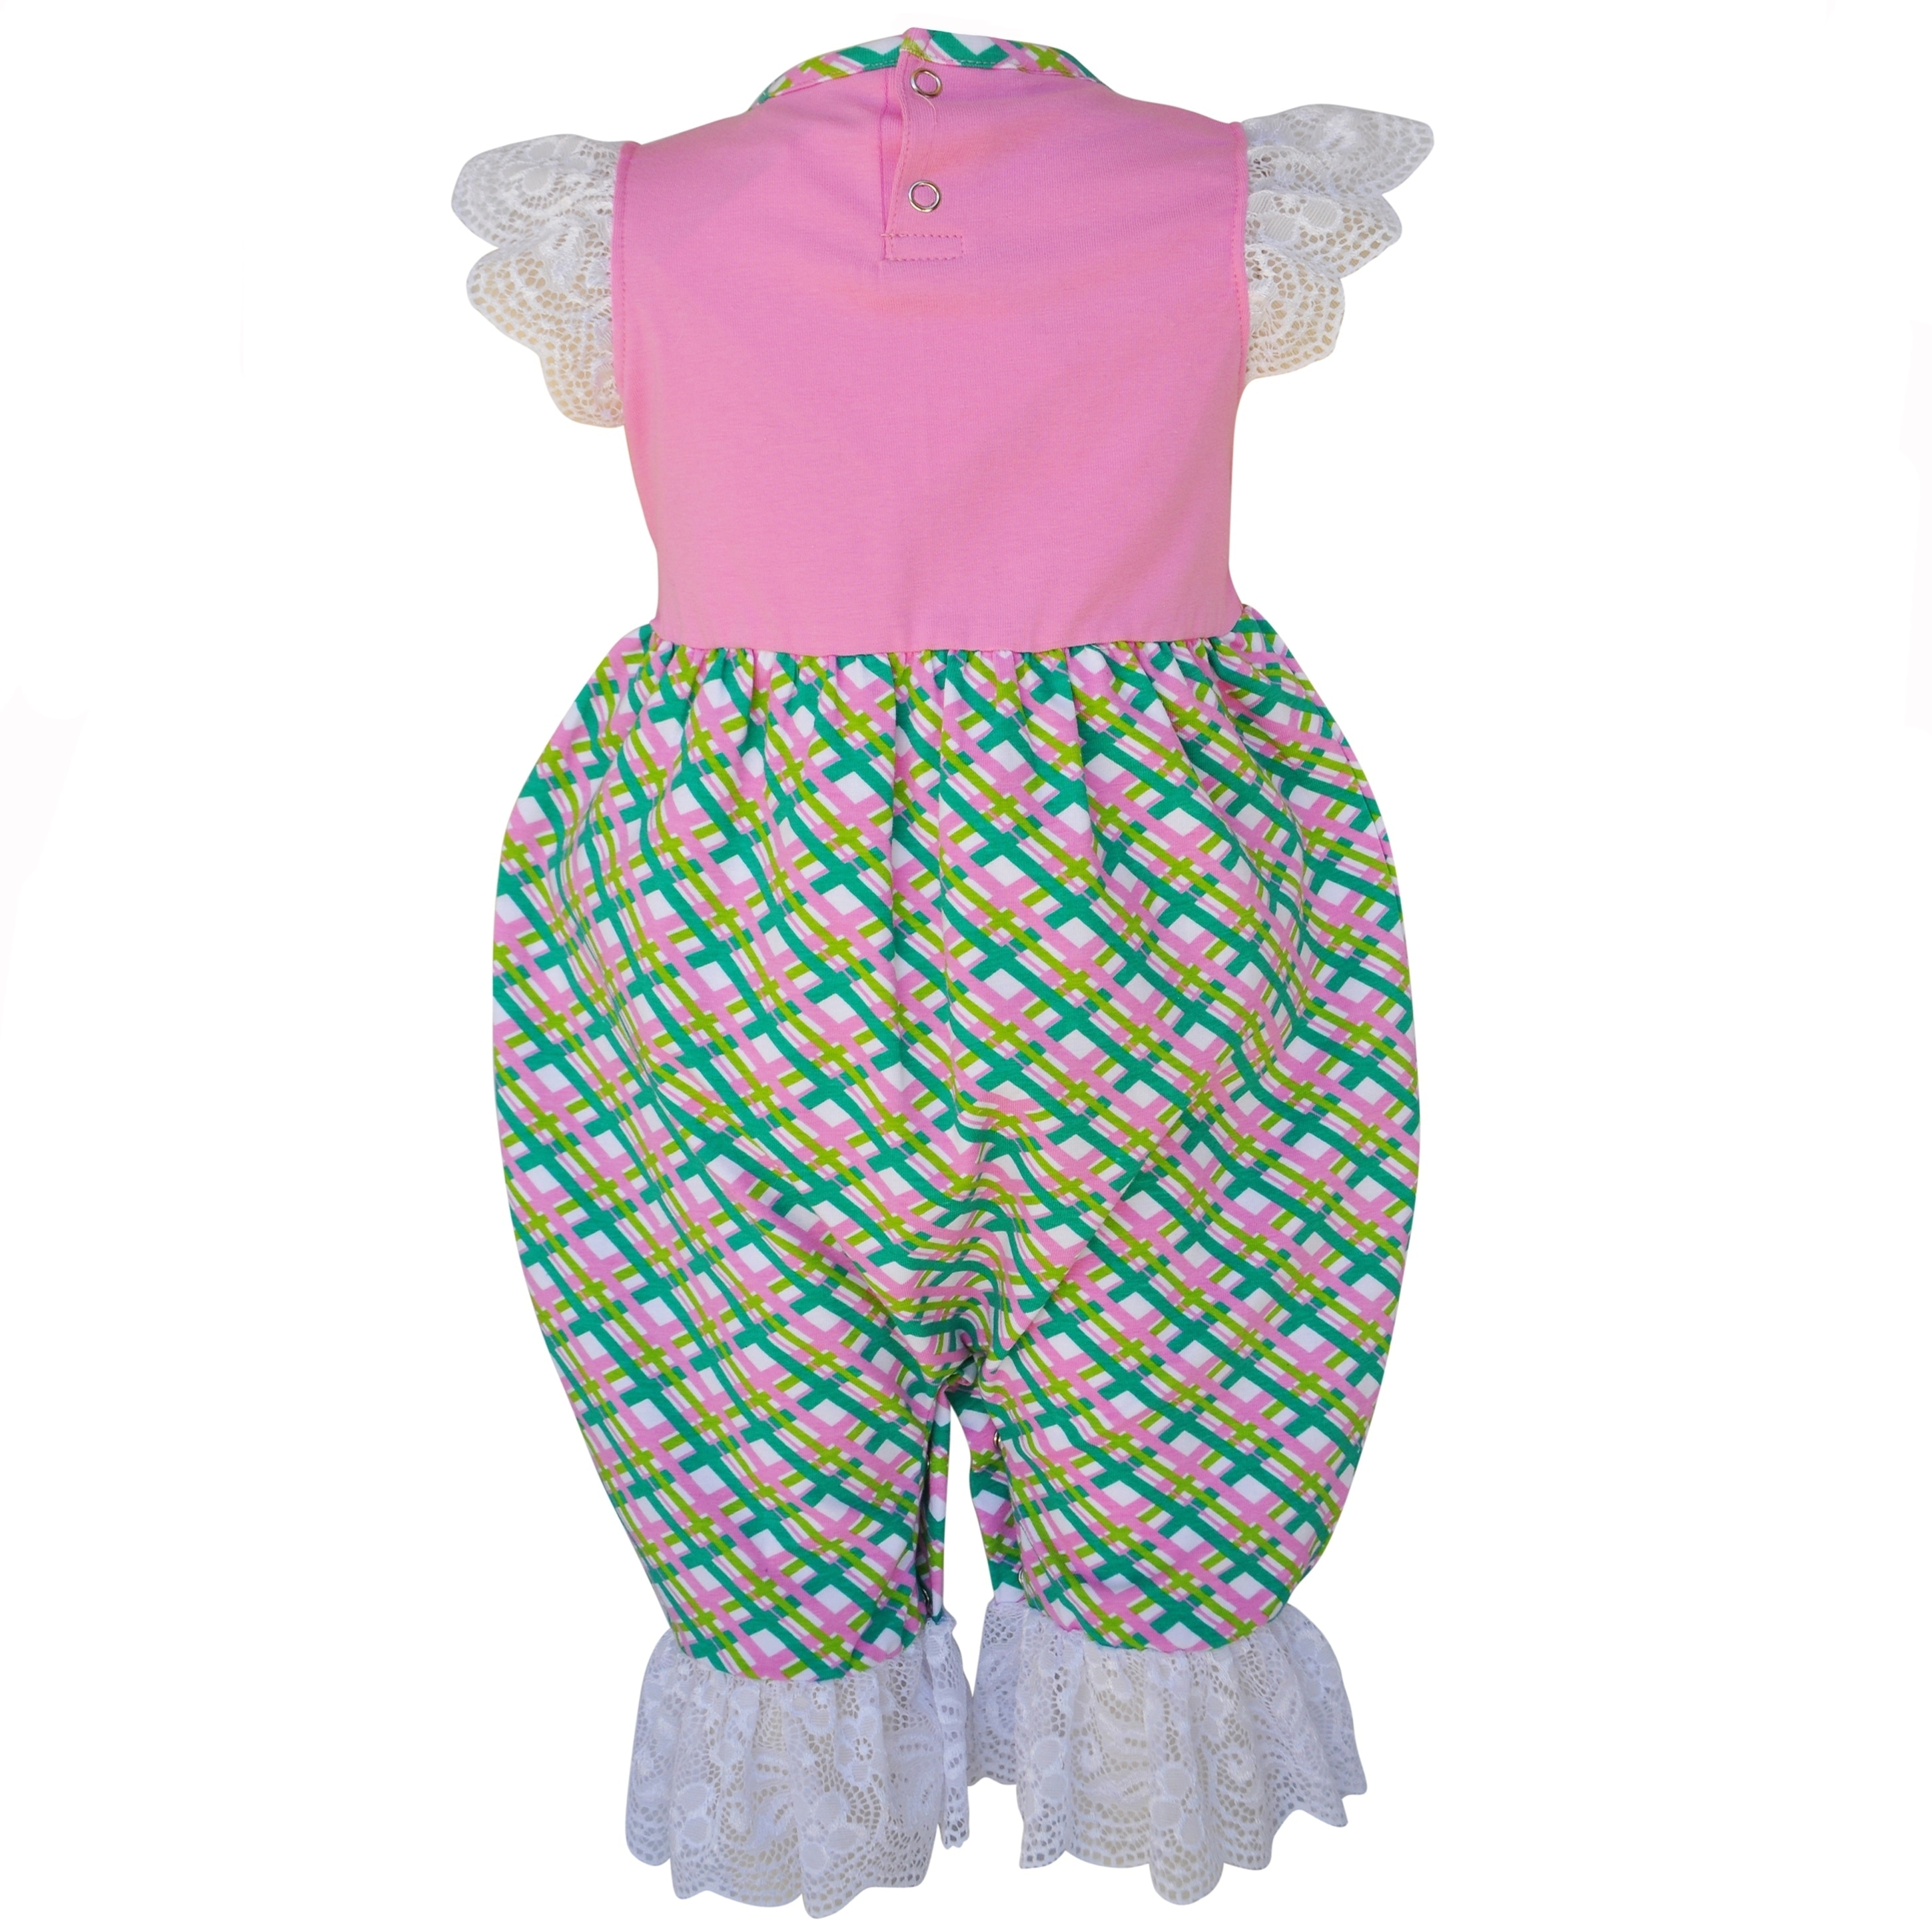 3a28c5cca9e6 Shop AnnLoren Baby Girls Boutique Cotton Easter Bunny Gingham Romper - On  Sale - Free Shipping On Orders Over  45 - Overstock.com - 19679016